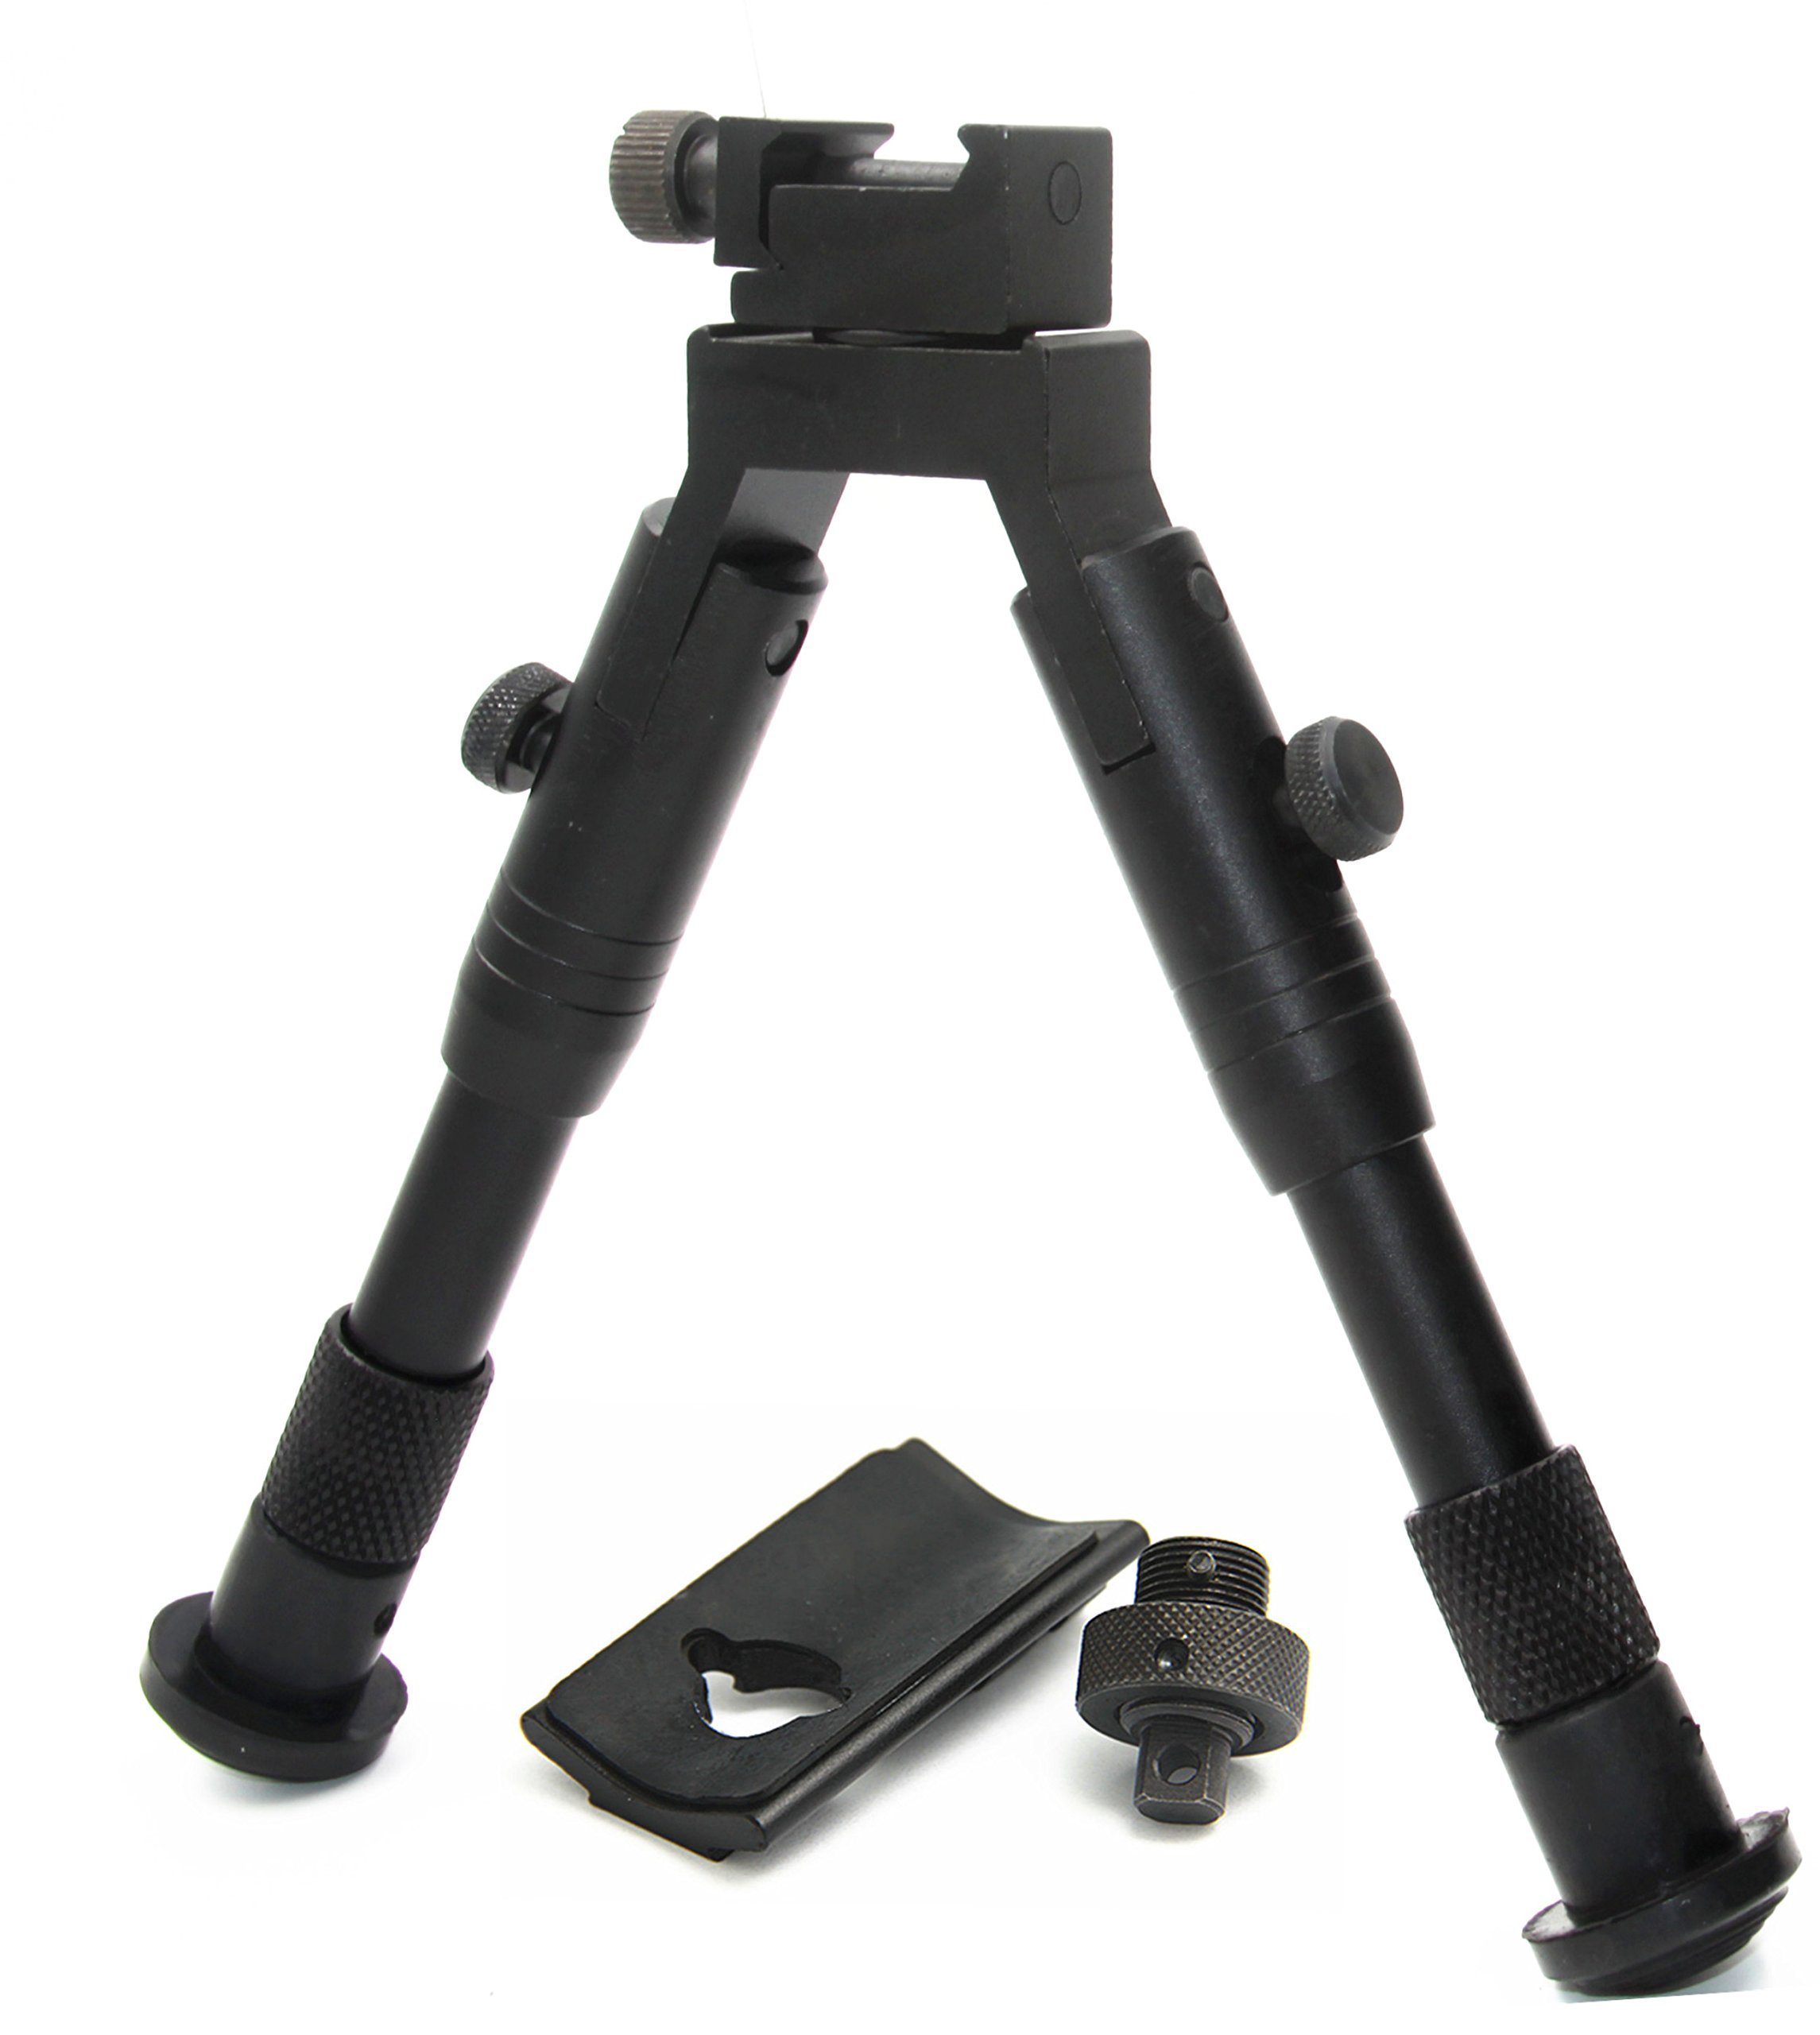 JINSE 6.2-6.7 Inches Tactical Bipod Picatinny Rail Swivel Foldable with Adapter